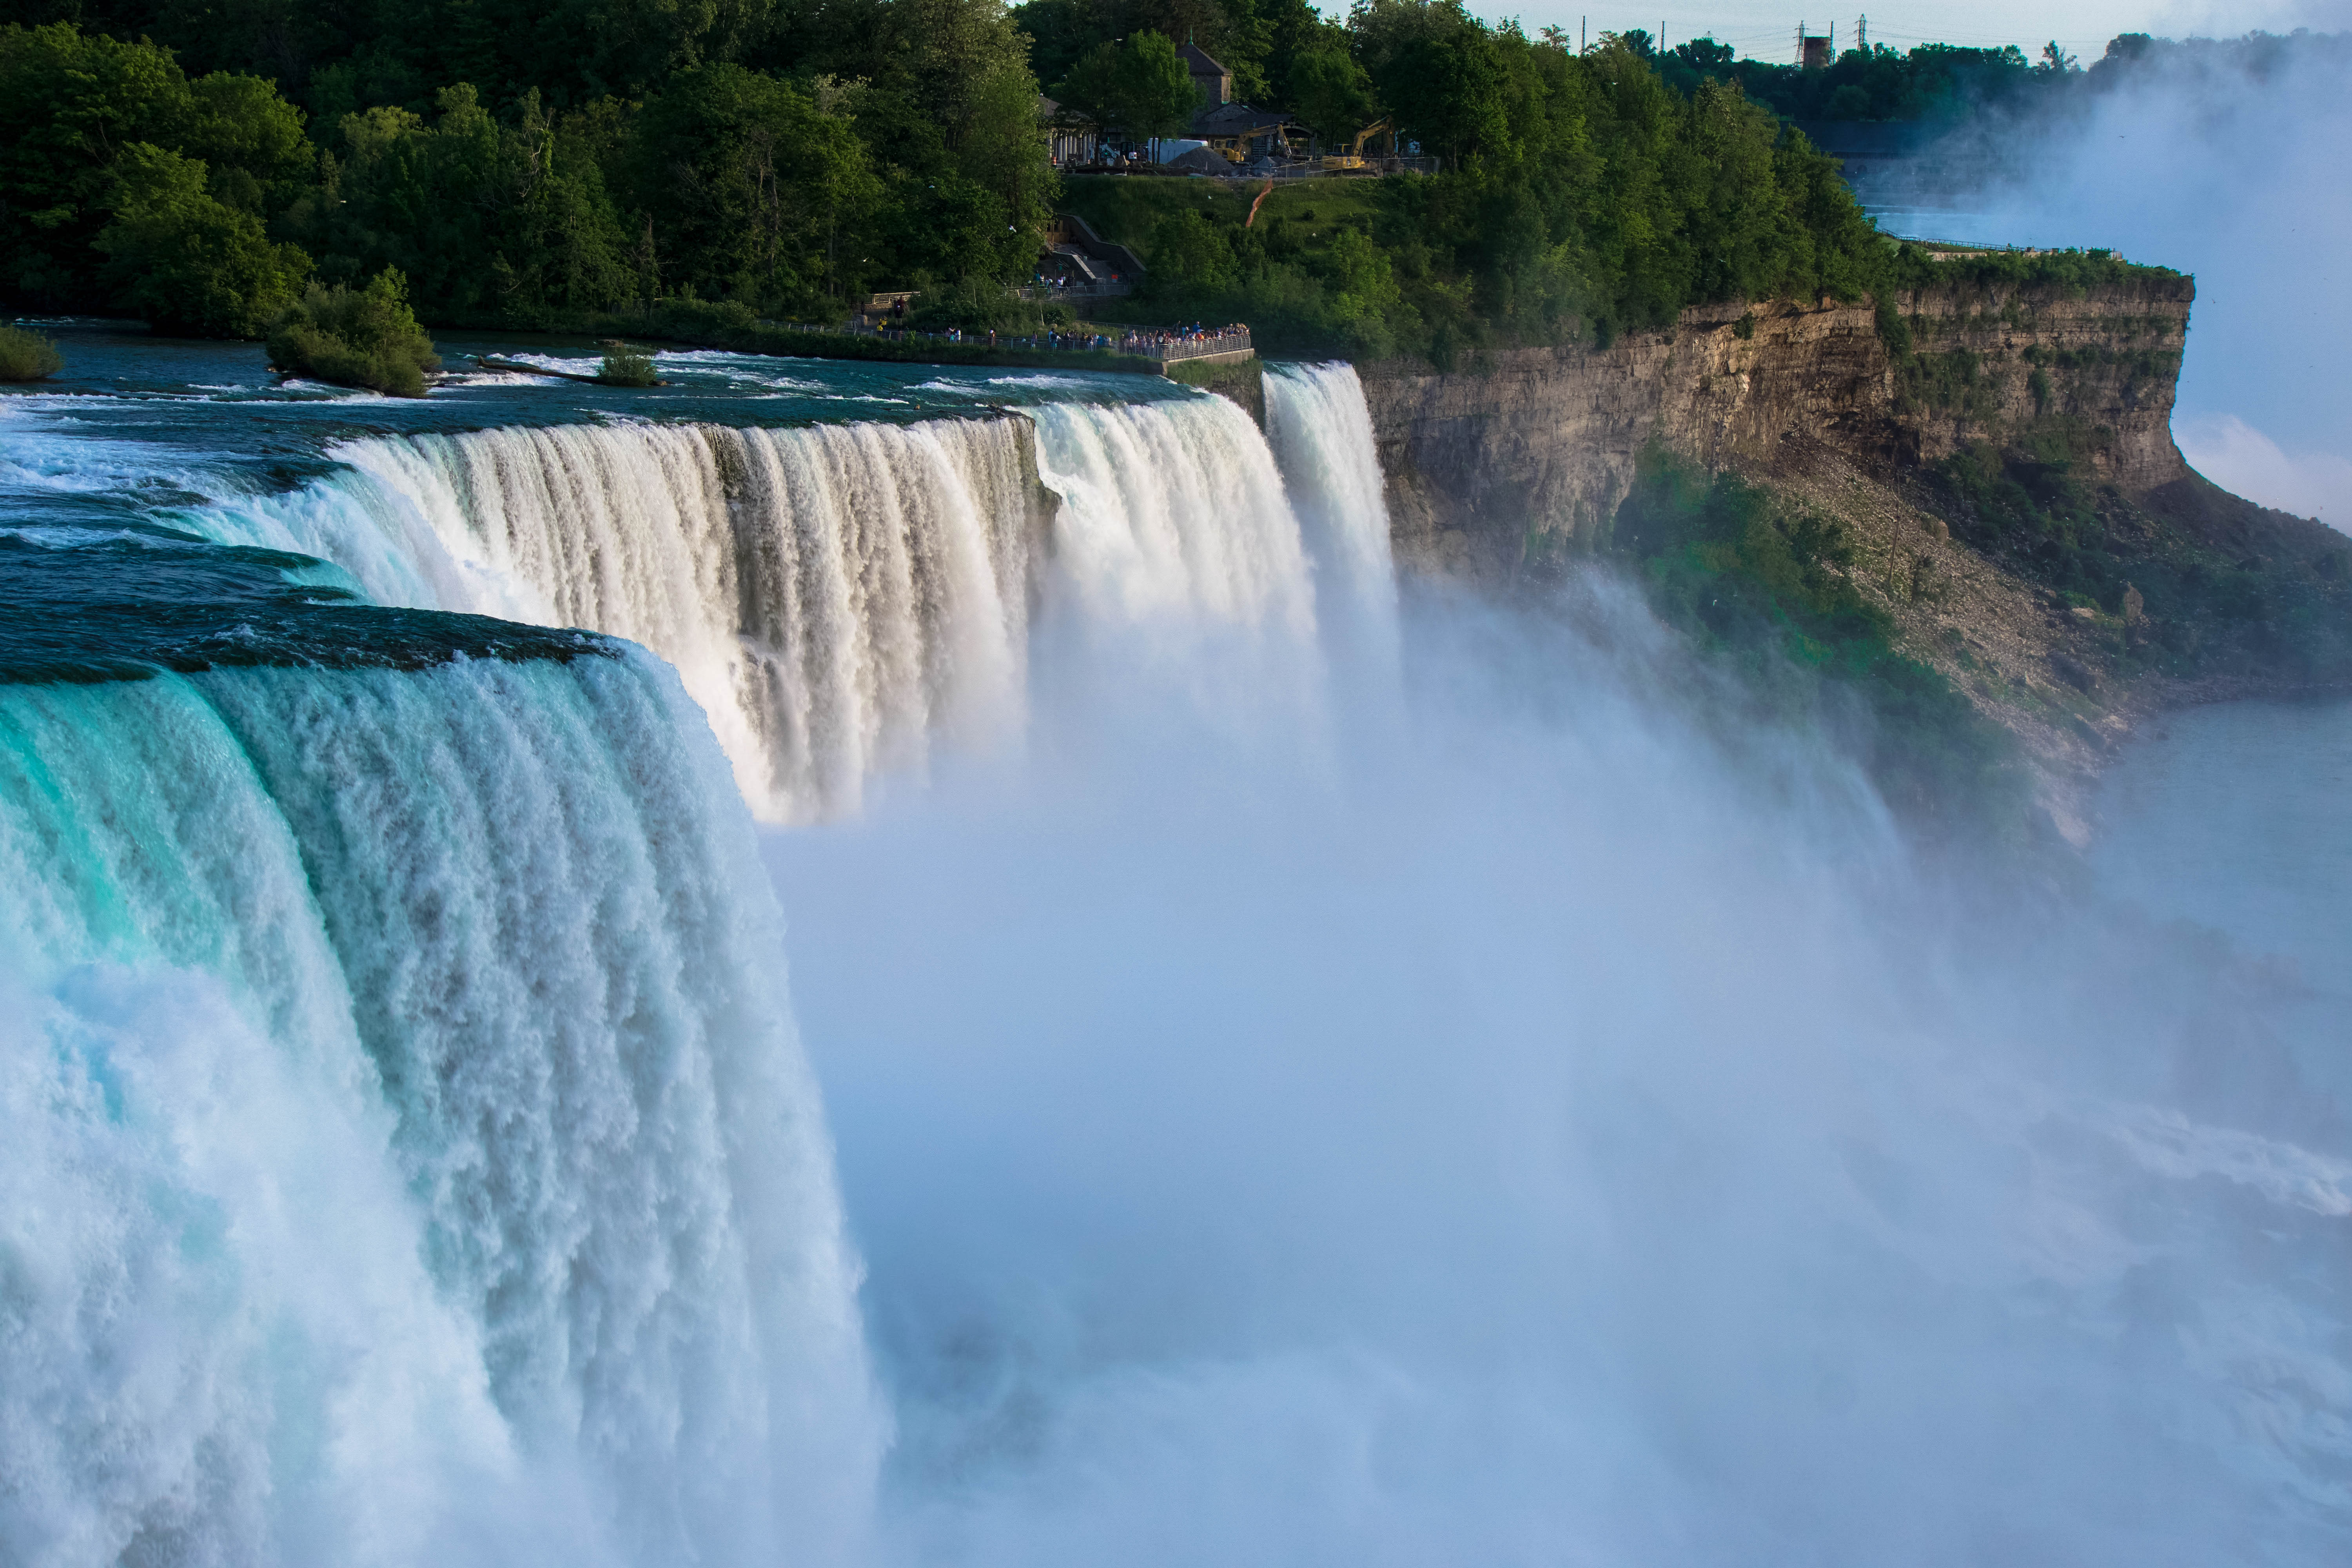 Amazing power of the falls